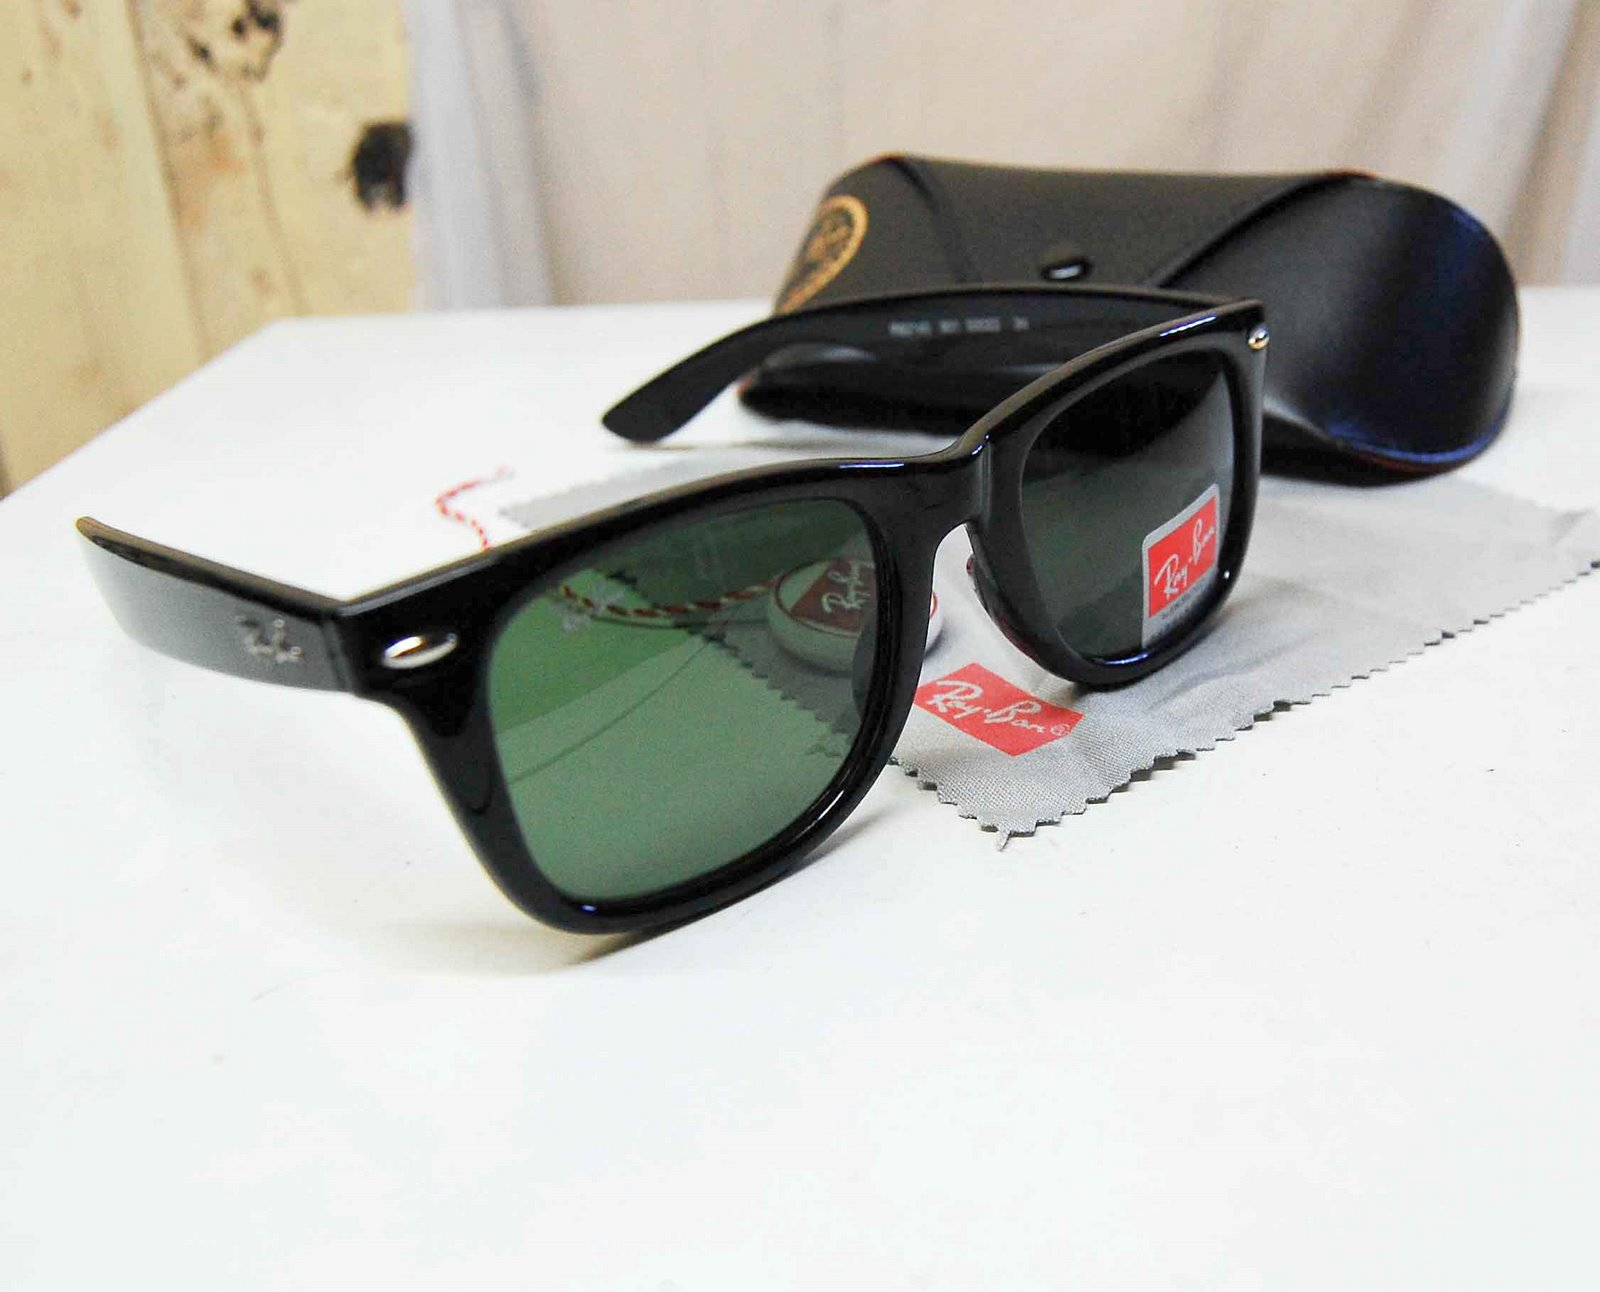 1e36f94a1 How To Clean Ray Ban Wayfarers | United Nations System Chief ...